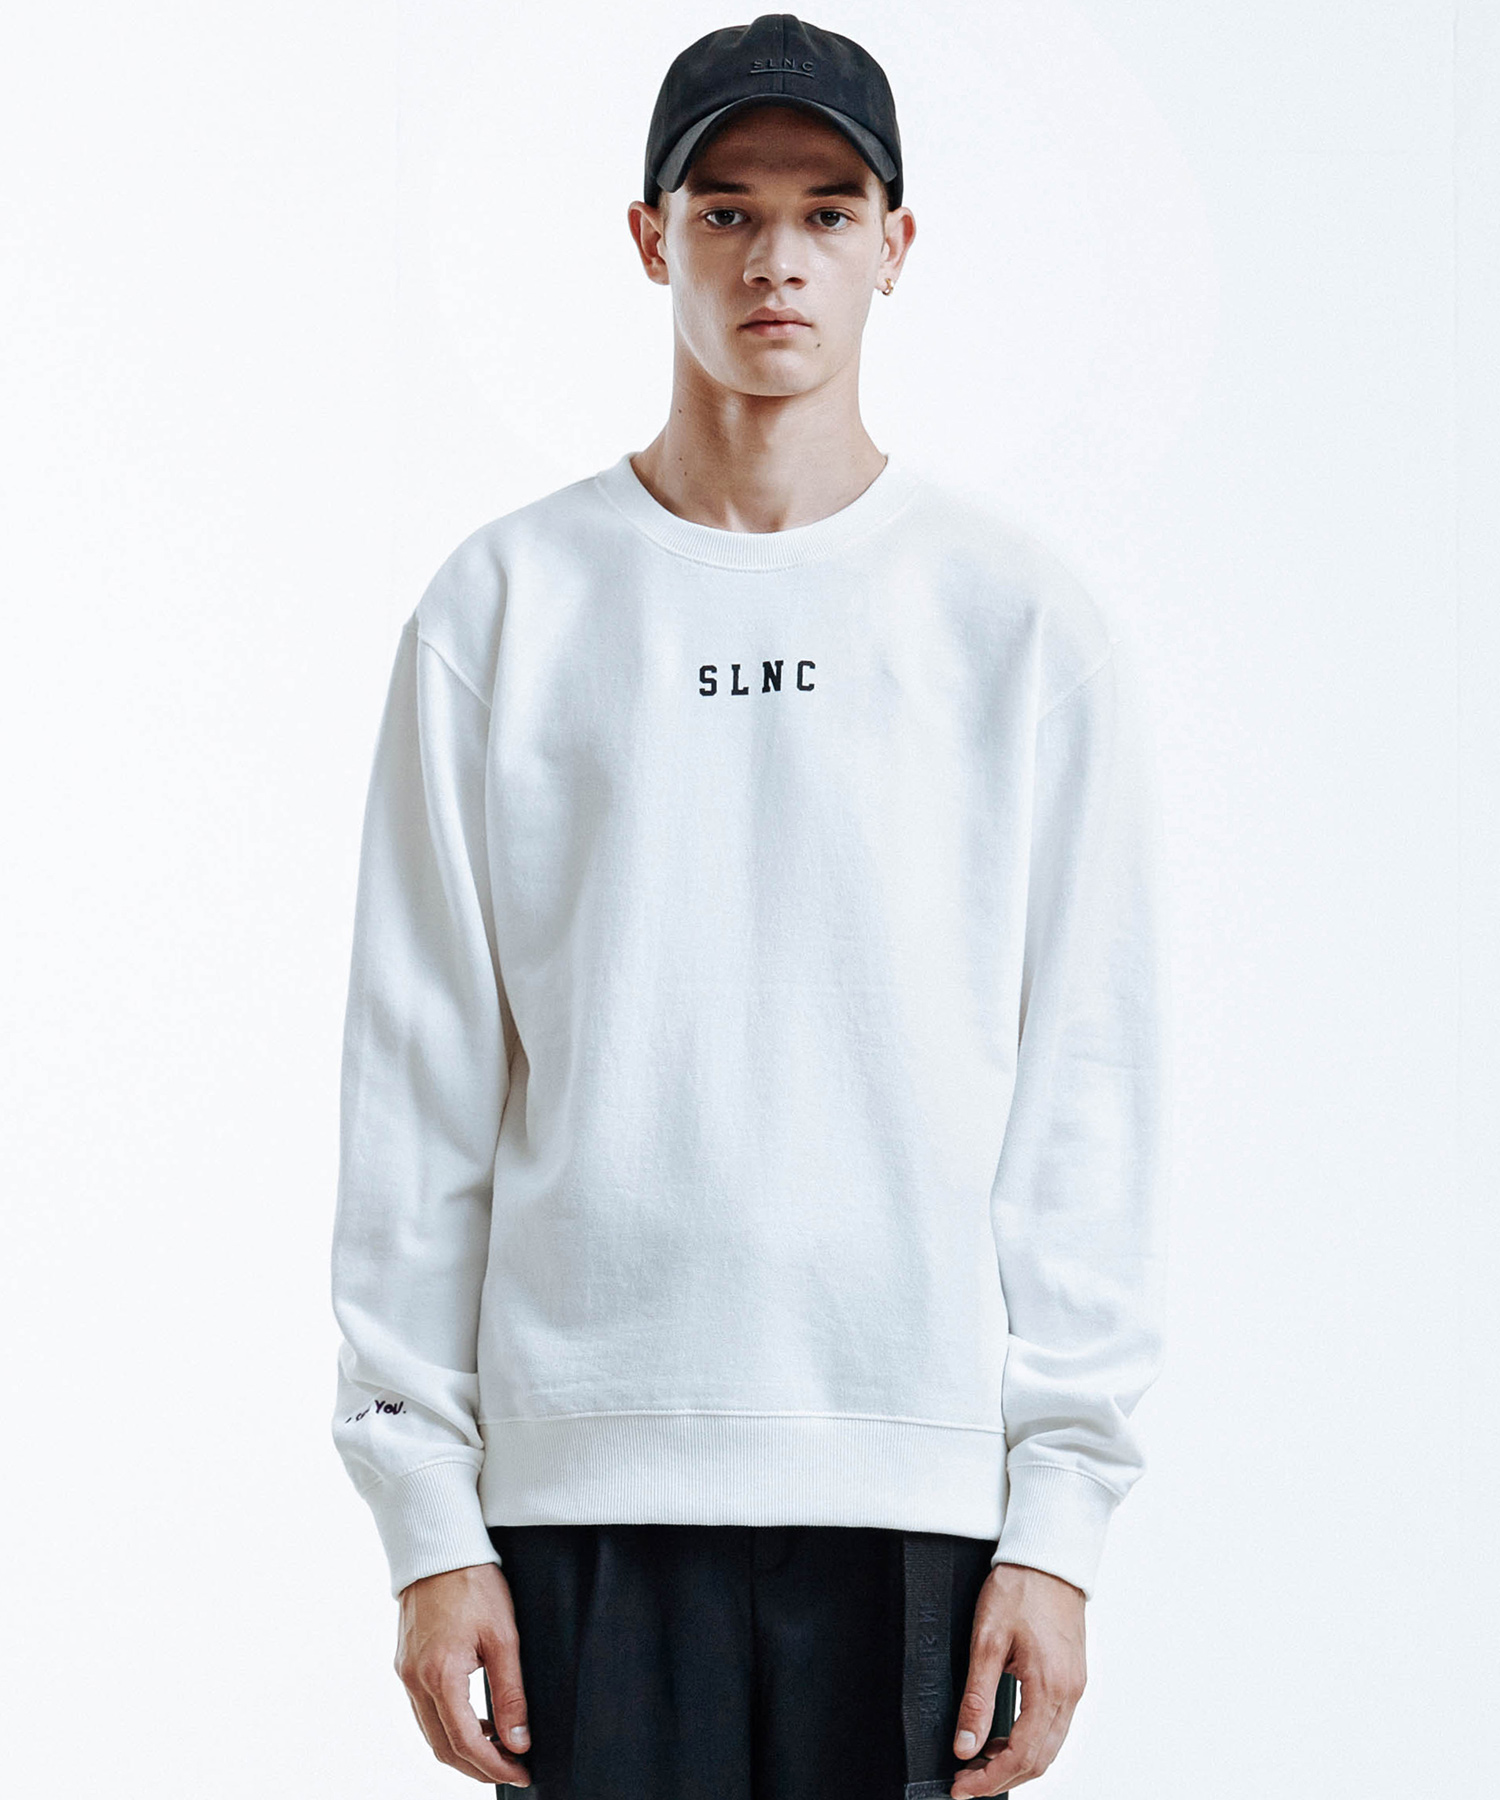 SLNC Sweatshirt (White)